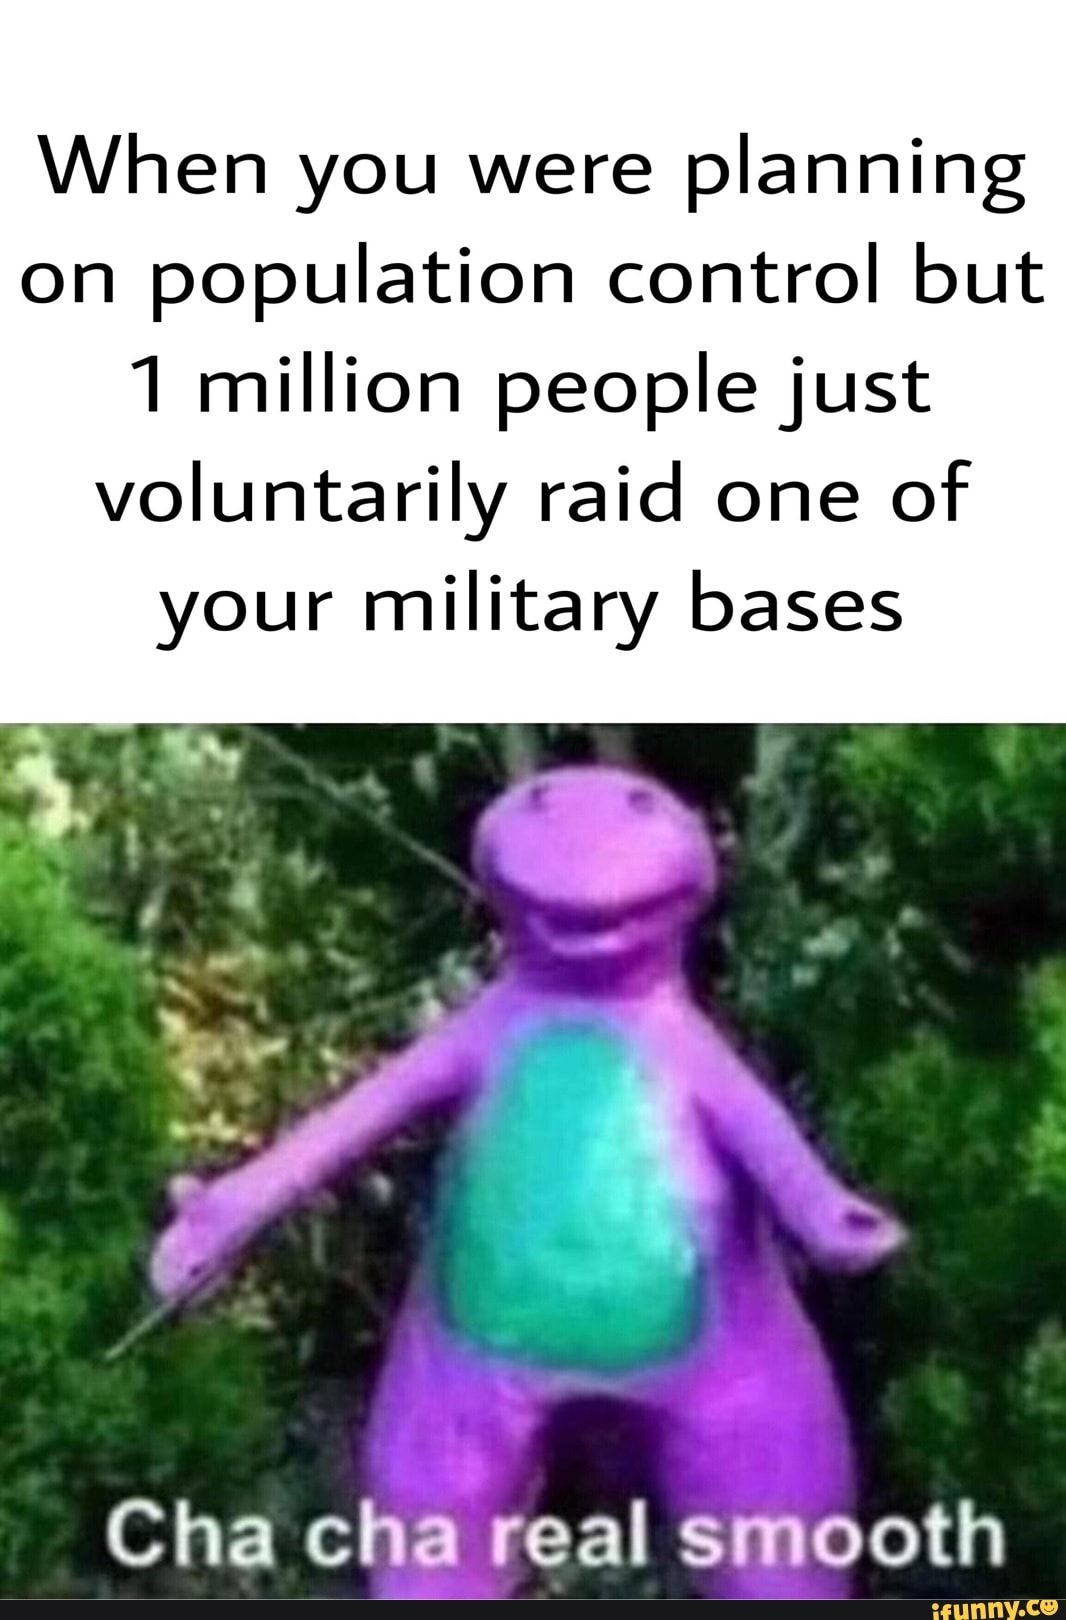 Picture memes B7dpySIs6 — iFunny When you were planning on population control but 1 million peoplejust voluntarily raid one of your military bases Cha chareal smooth – popular memes on the site